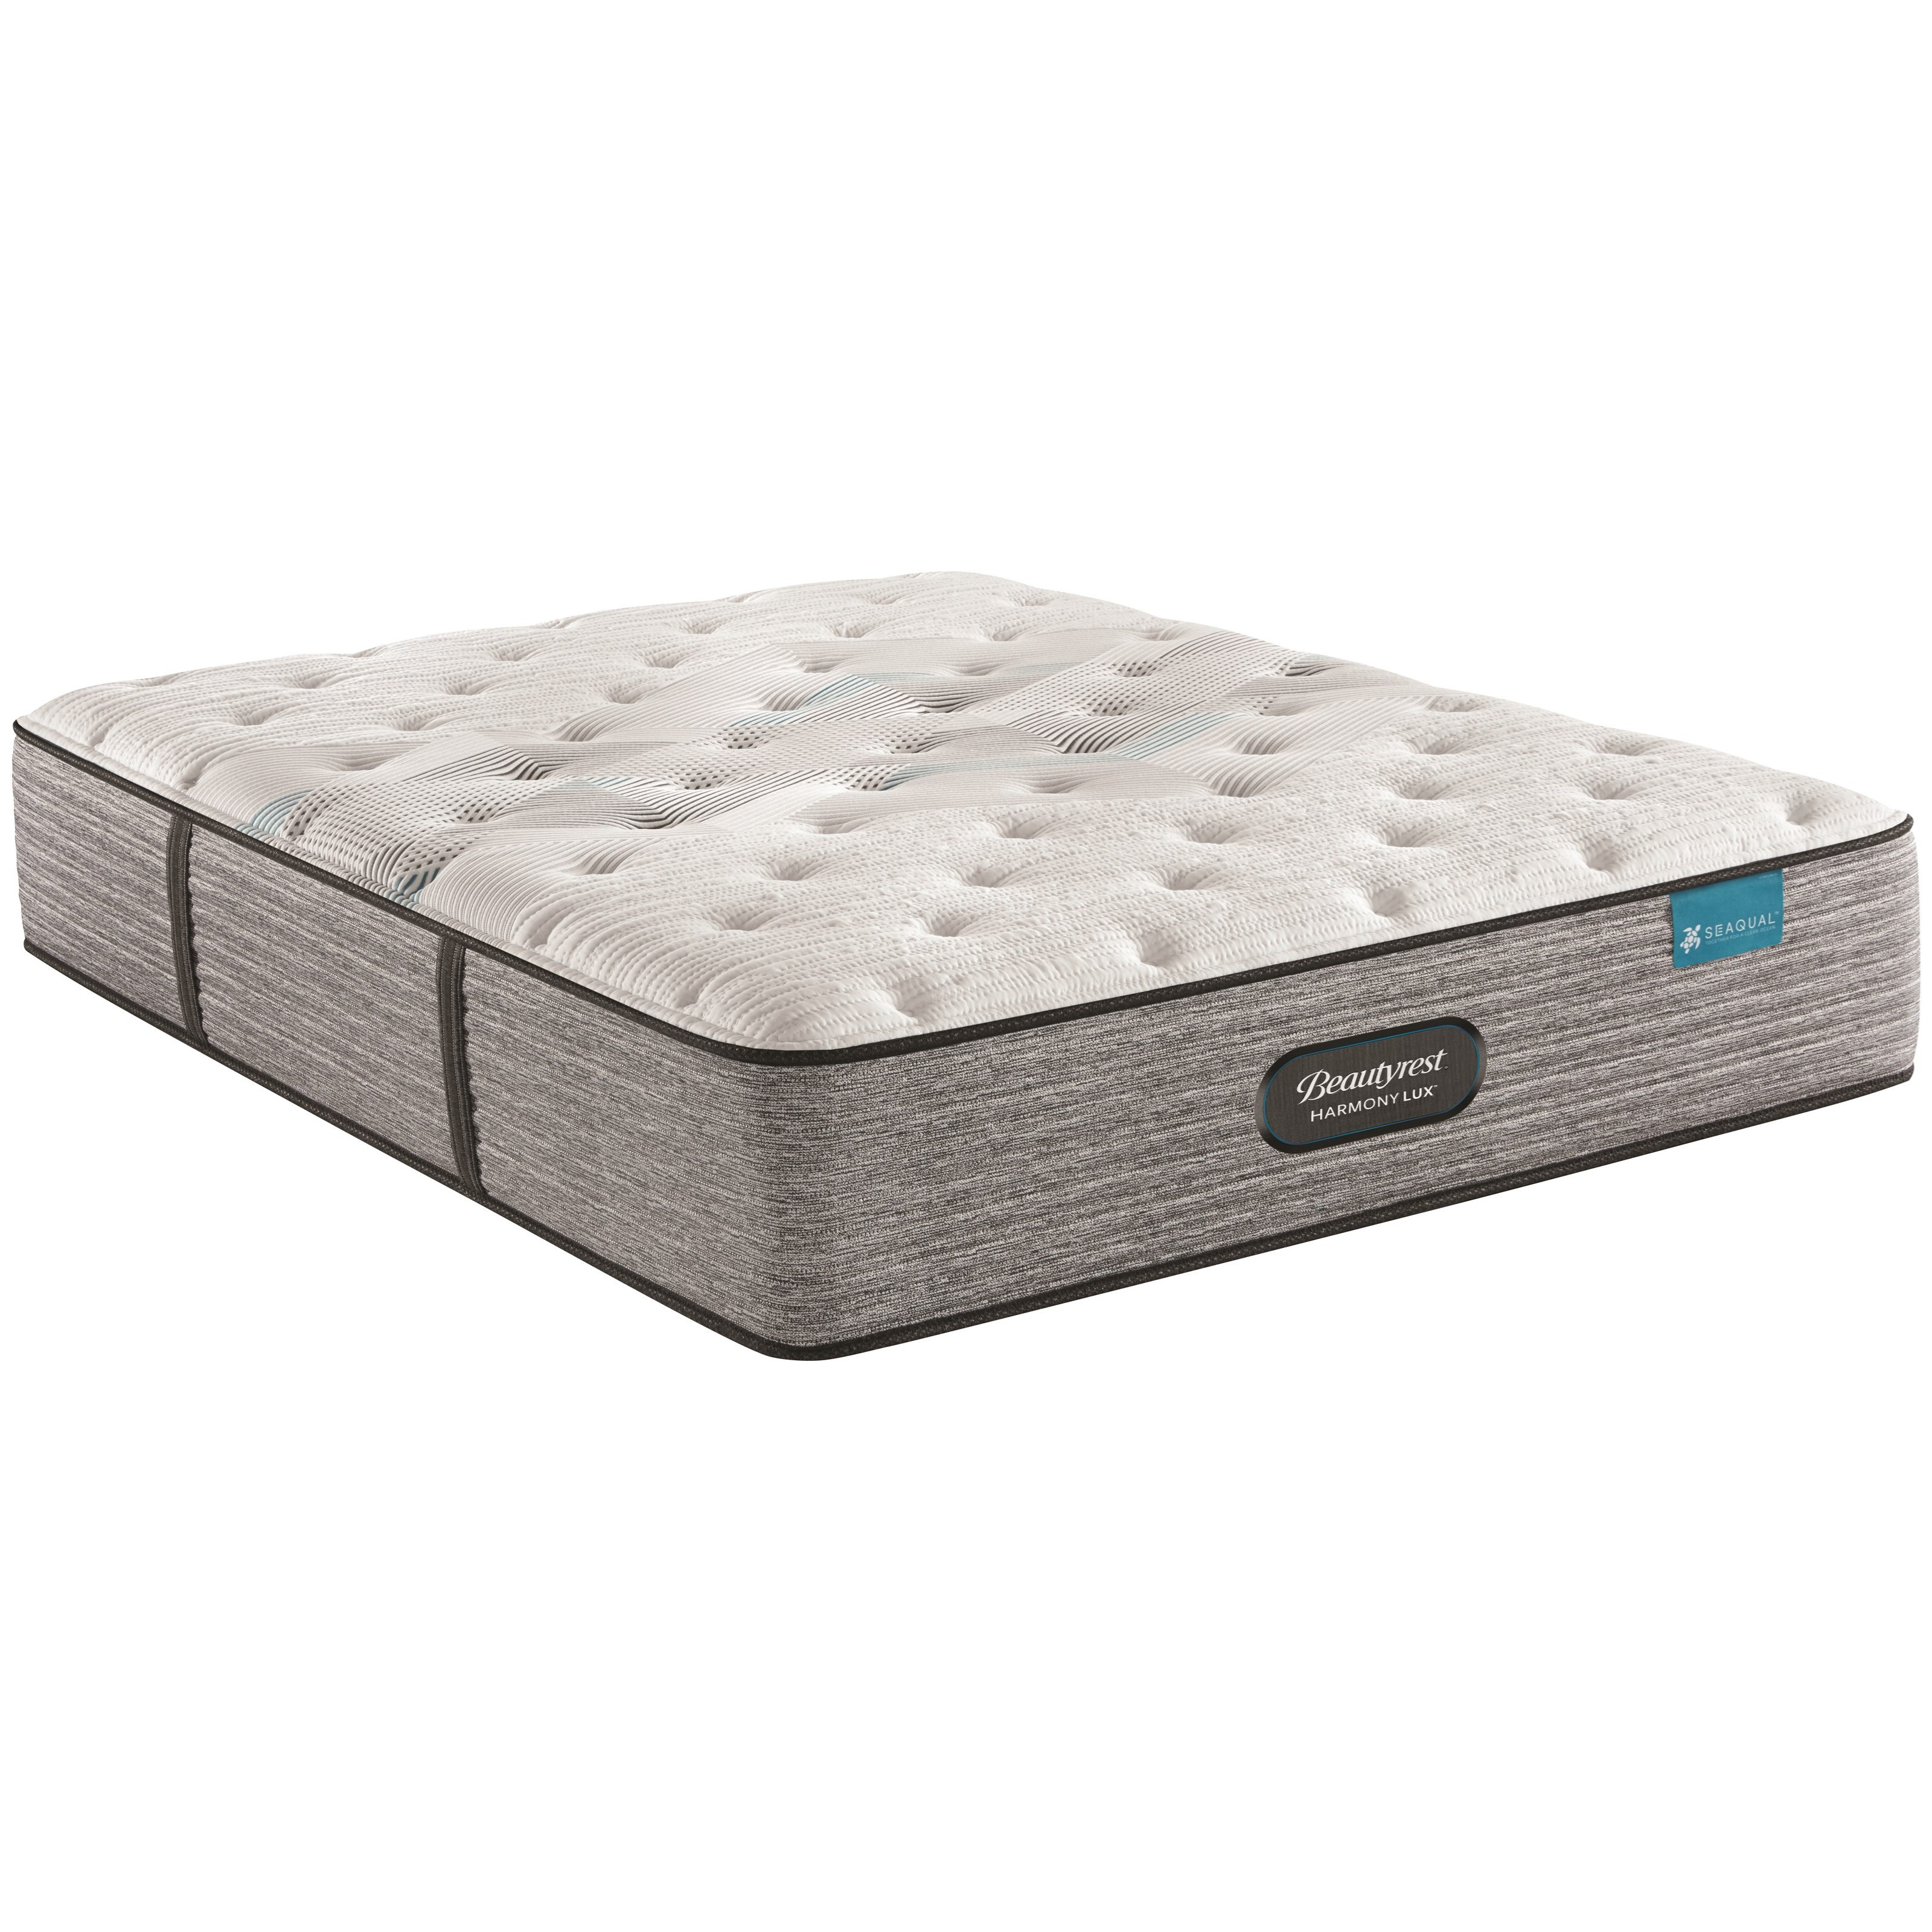 "Carbon Series Medium Twin XL 13 3/4"" Medium Firm Mattress by Beautyrest at Walker's Mattress"